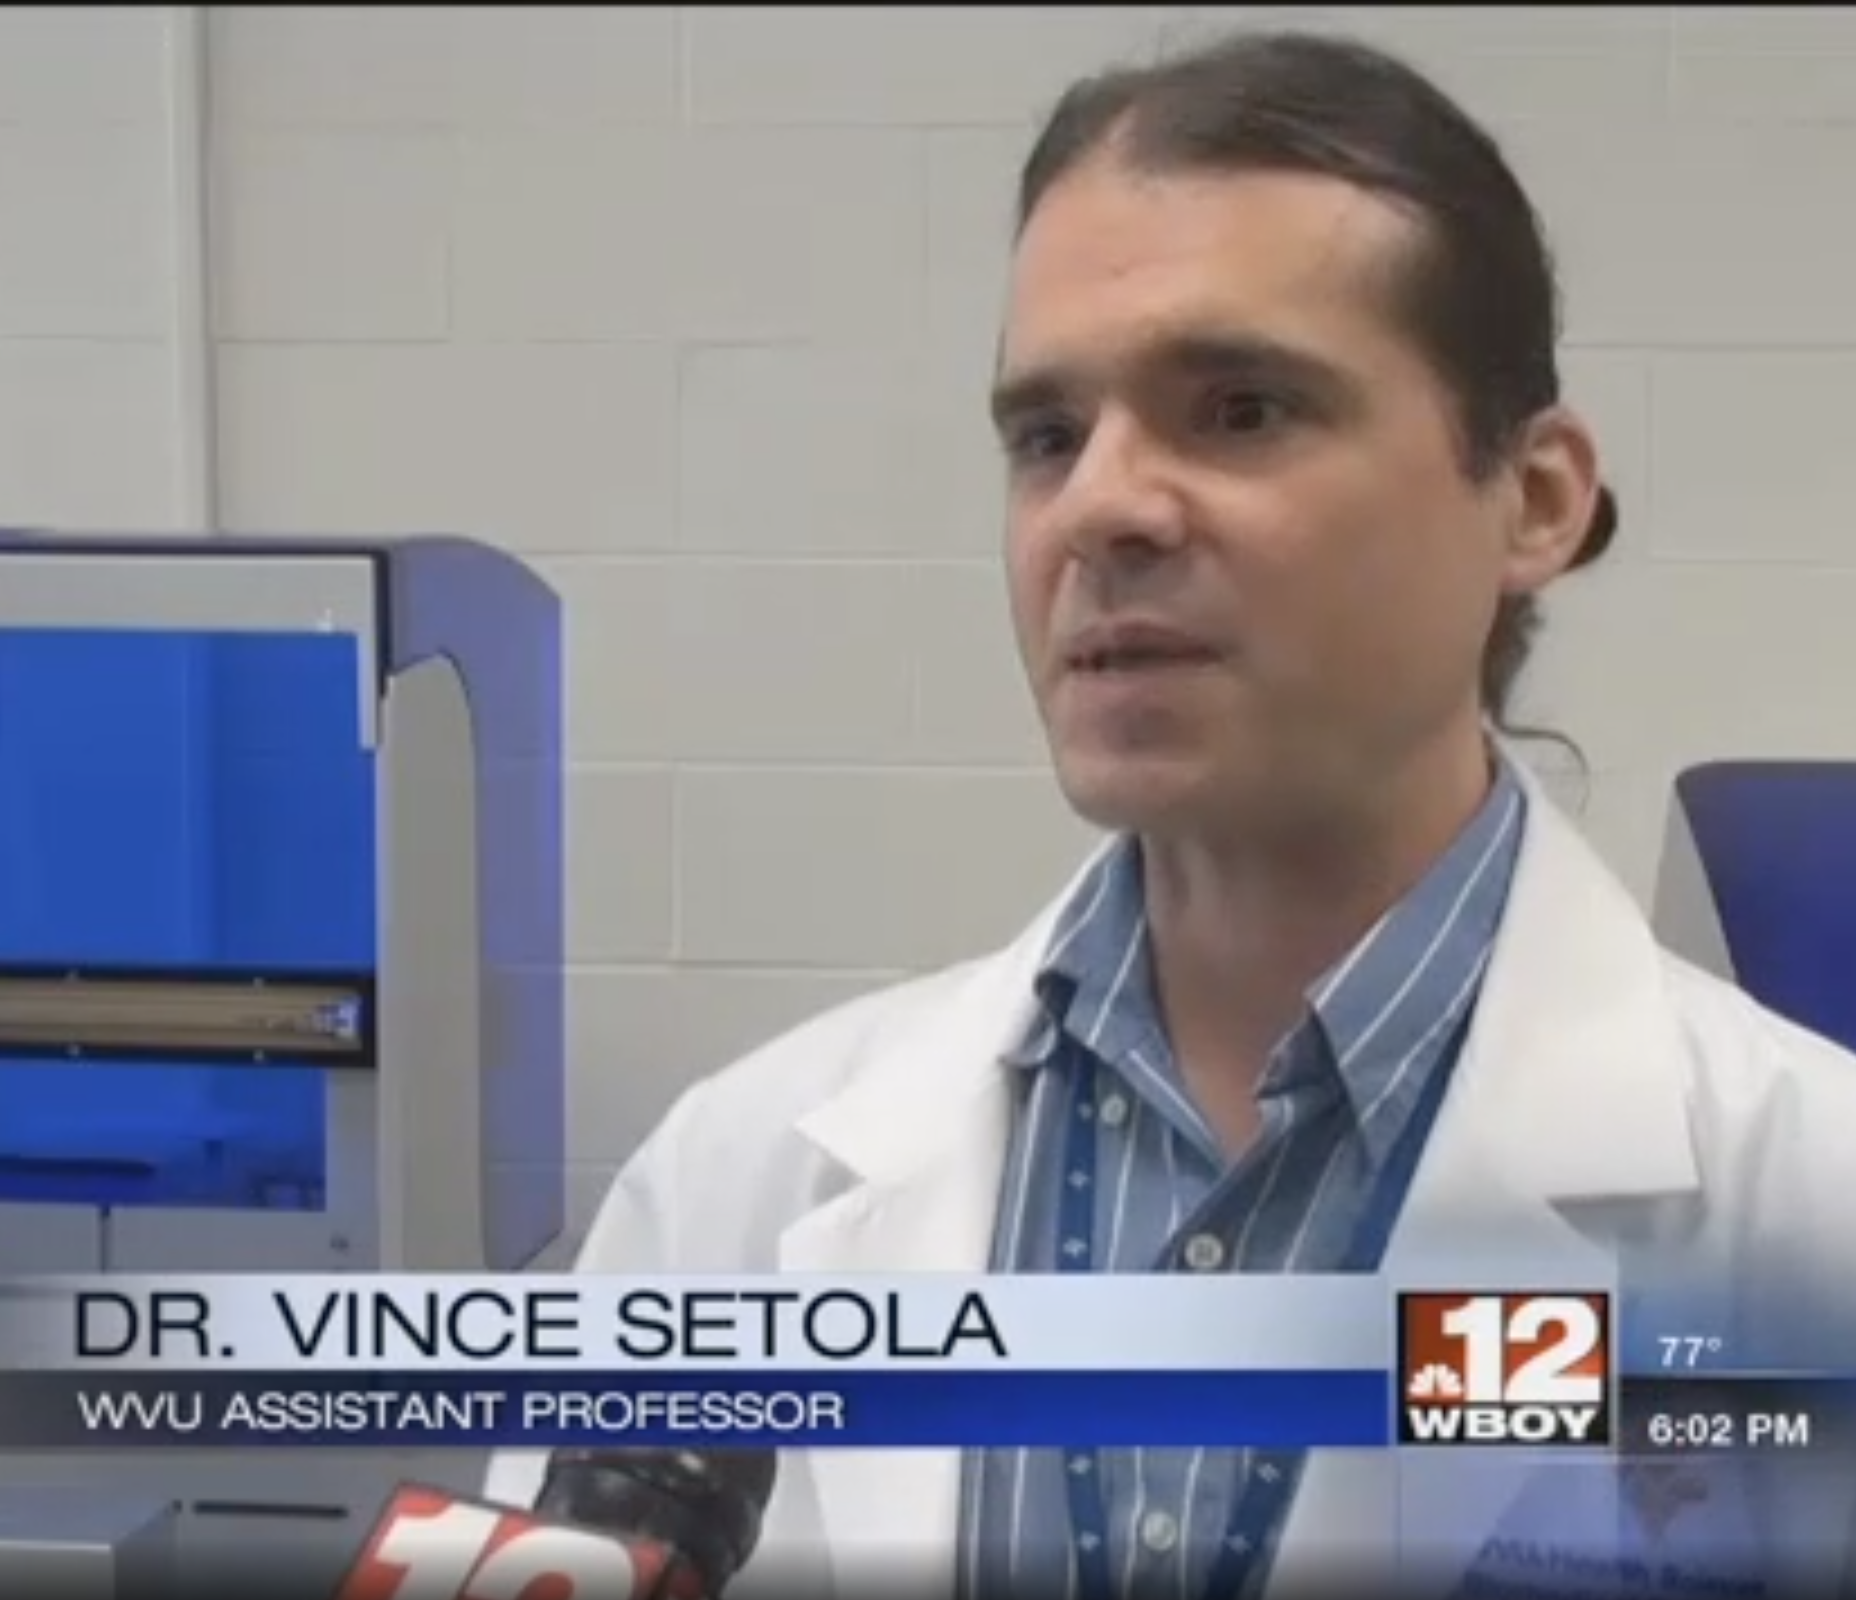 Dr. Vince Setola on WBOY newscast